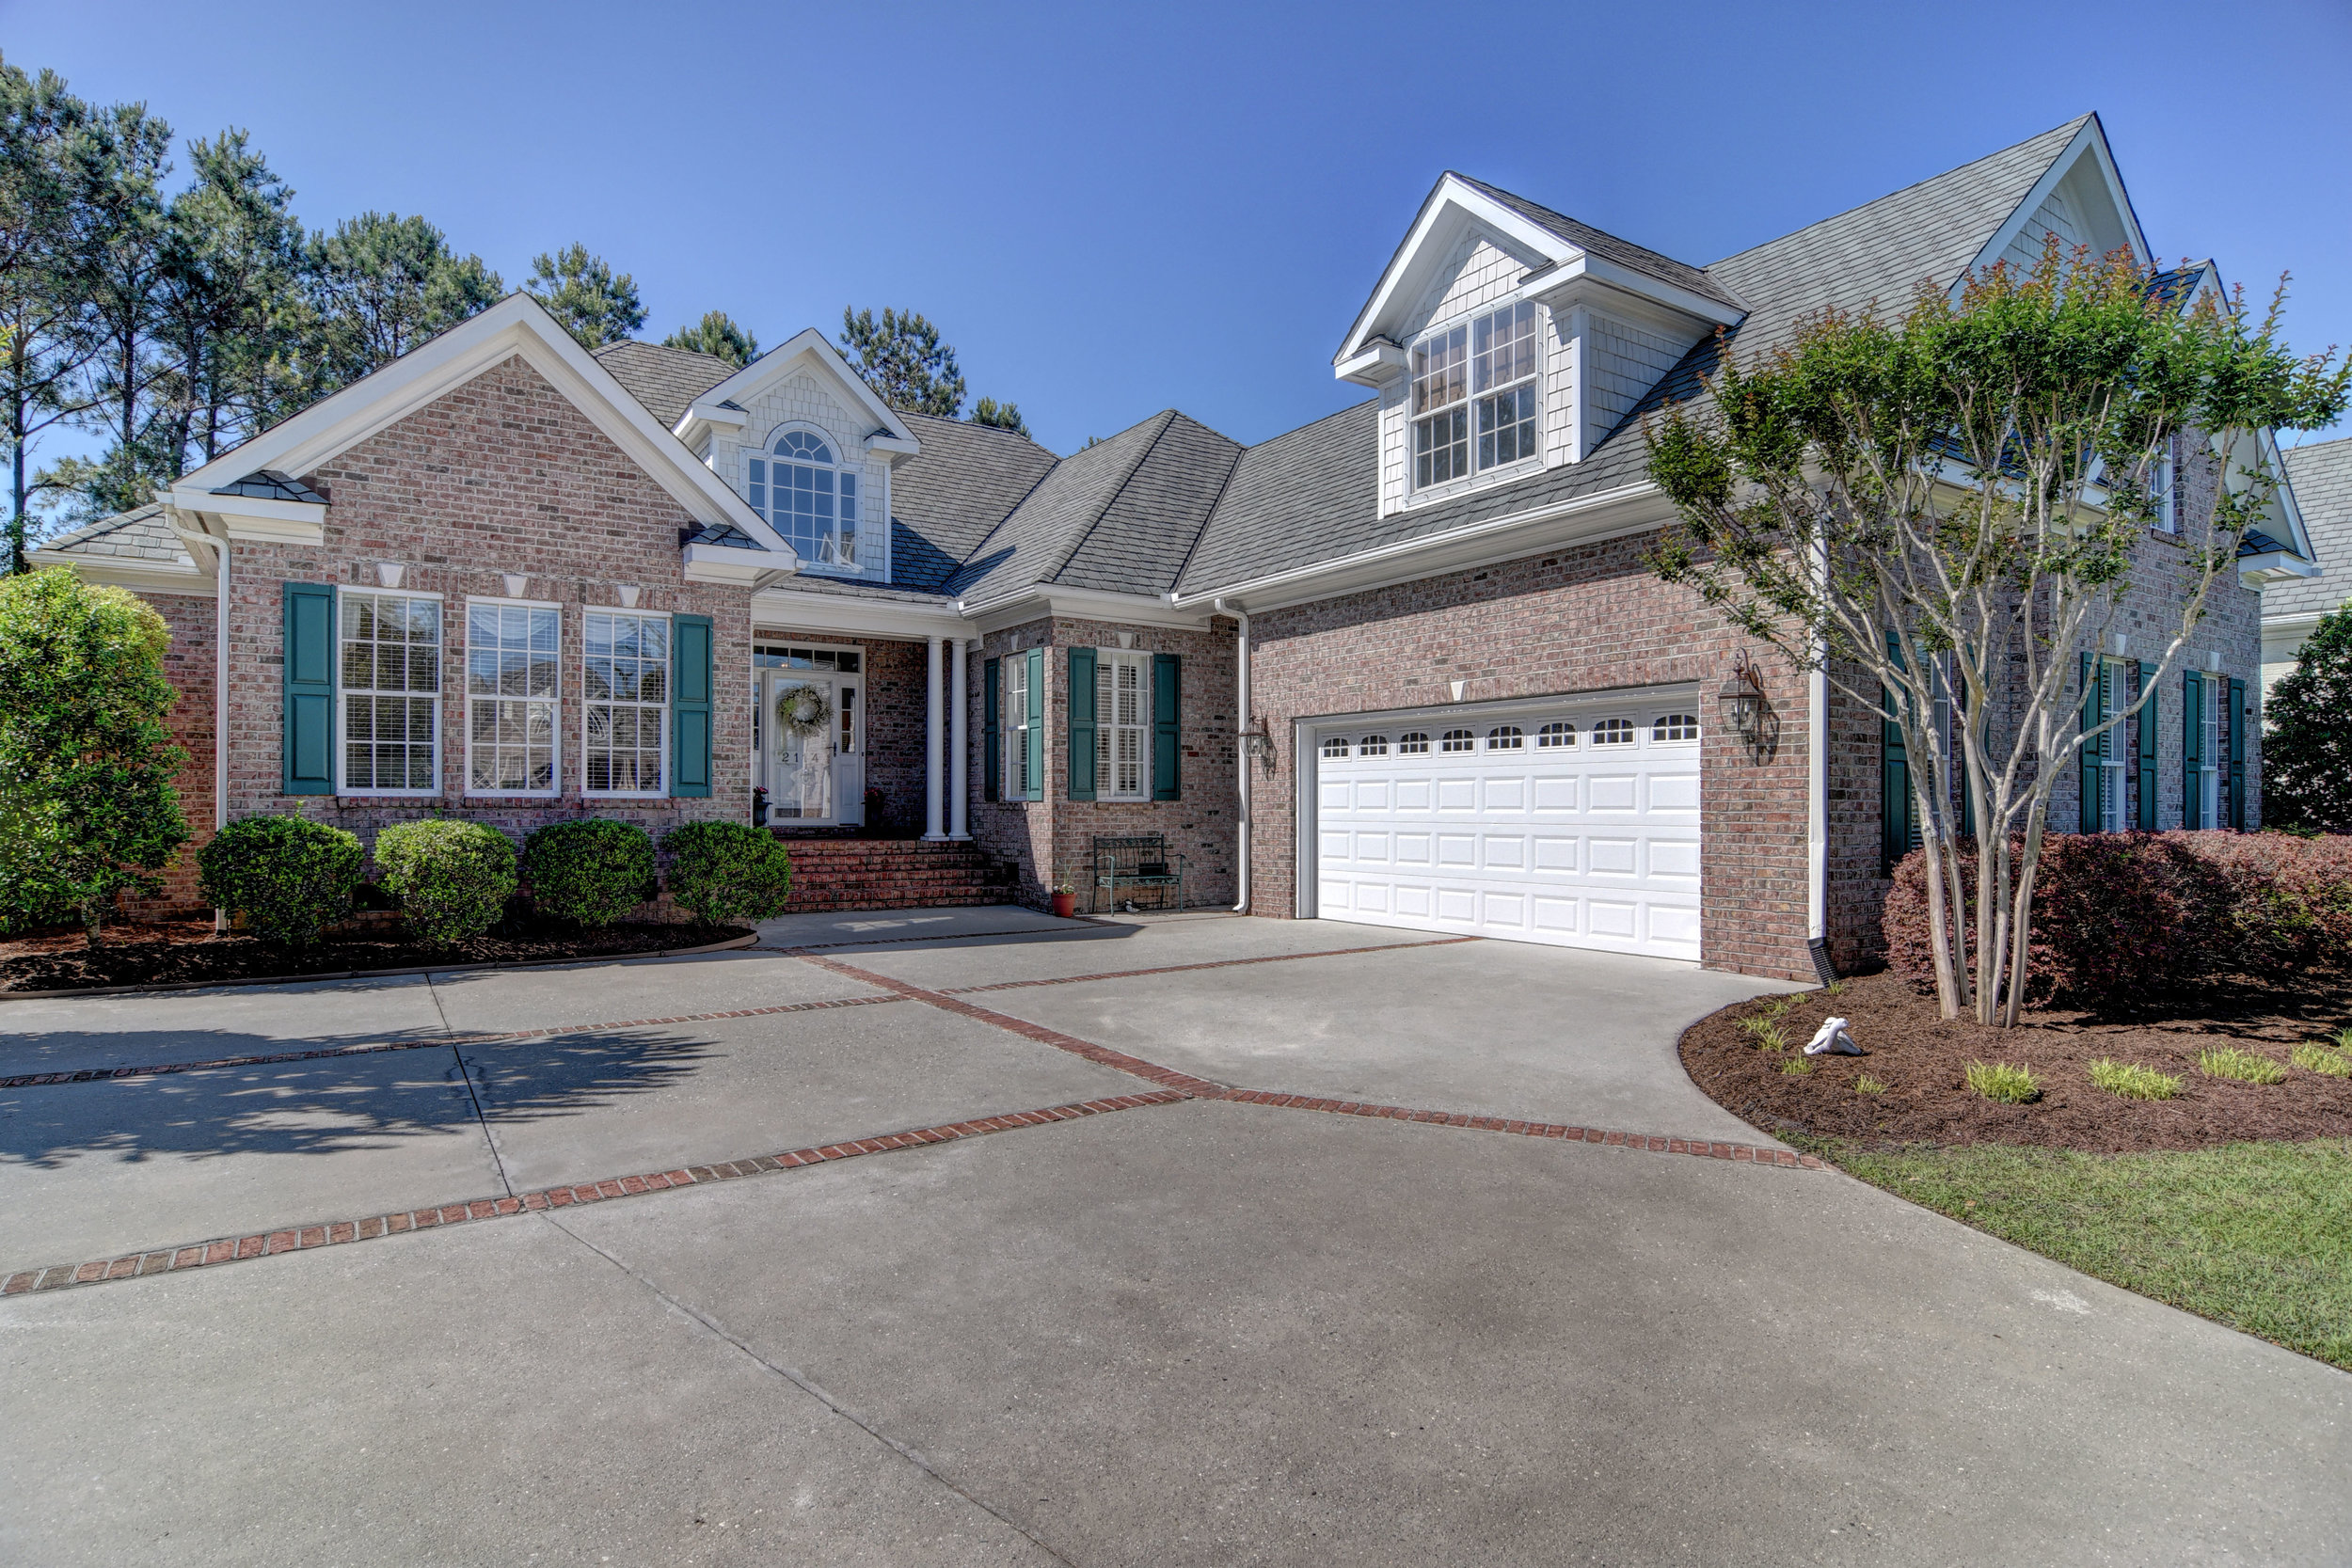 2114 Bay Colony Ln Wilmington-print-034-1-SideEntry Garage-4200x2801-300dpi.jpg